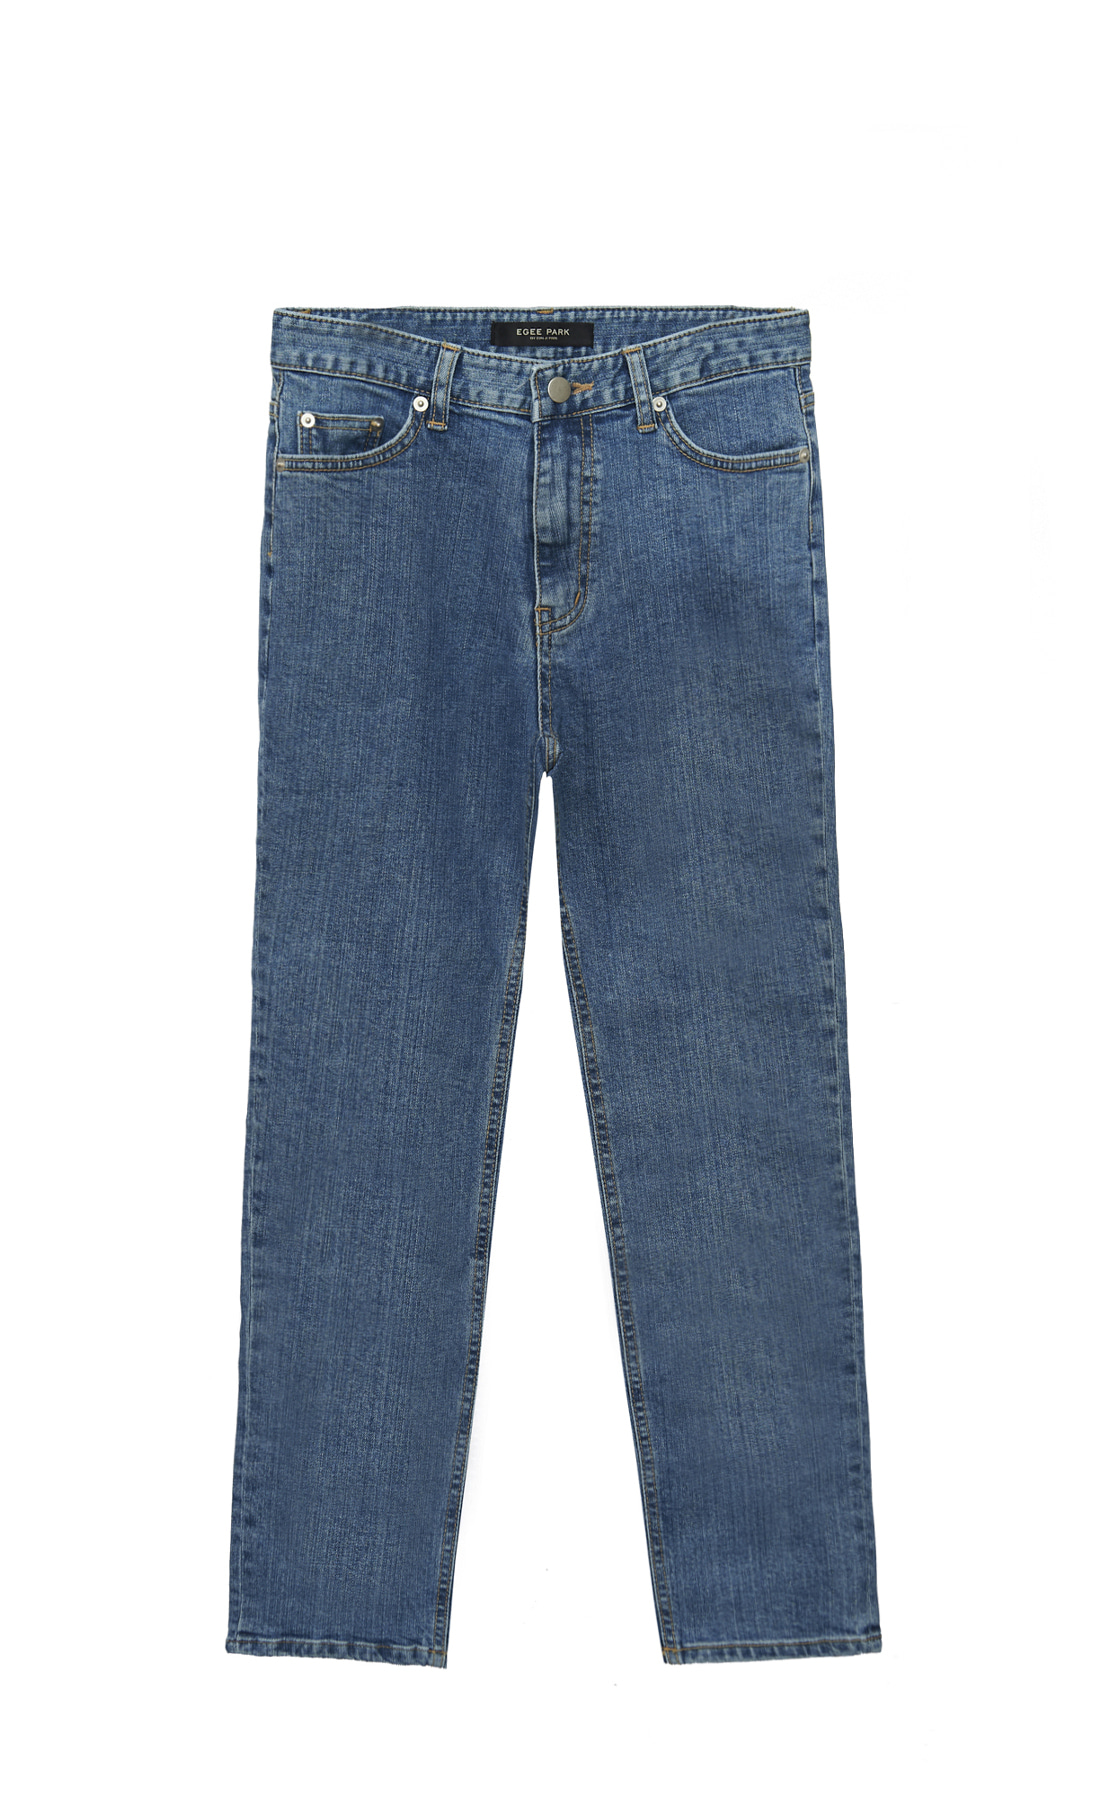 EG STRAIGHT MEDIUM BLUE JEANS